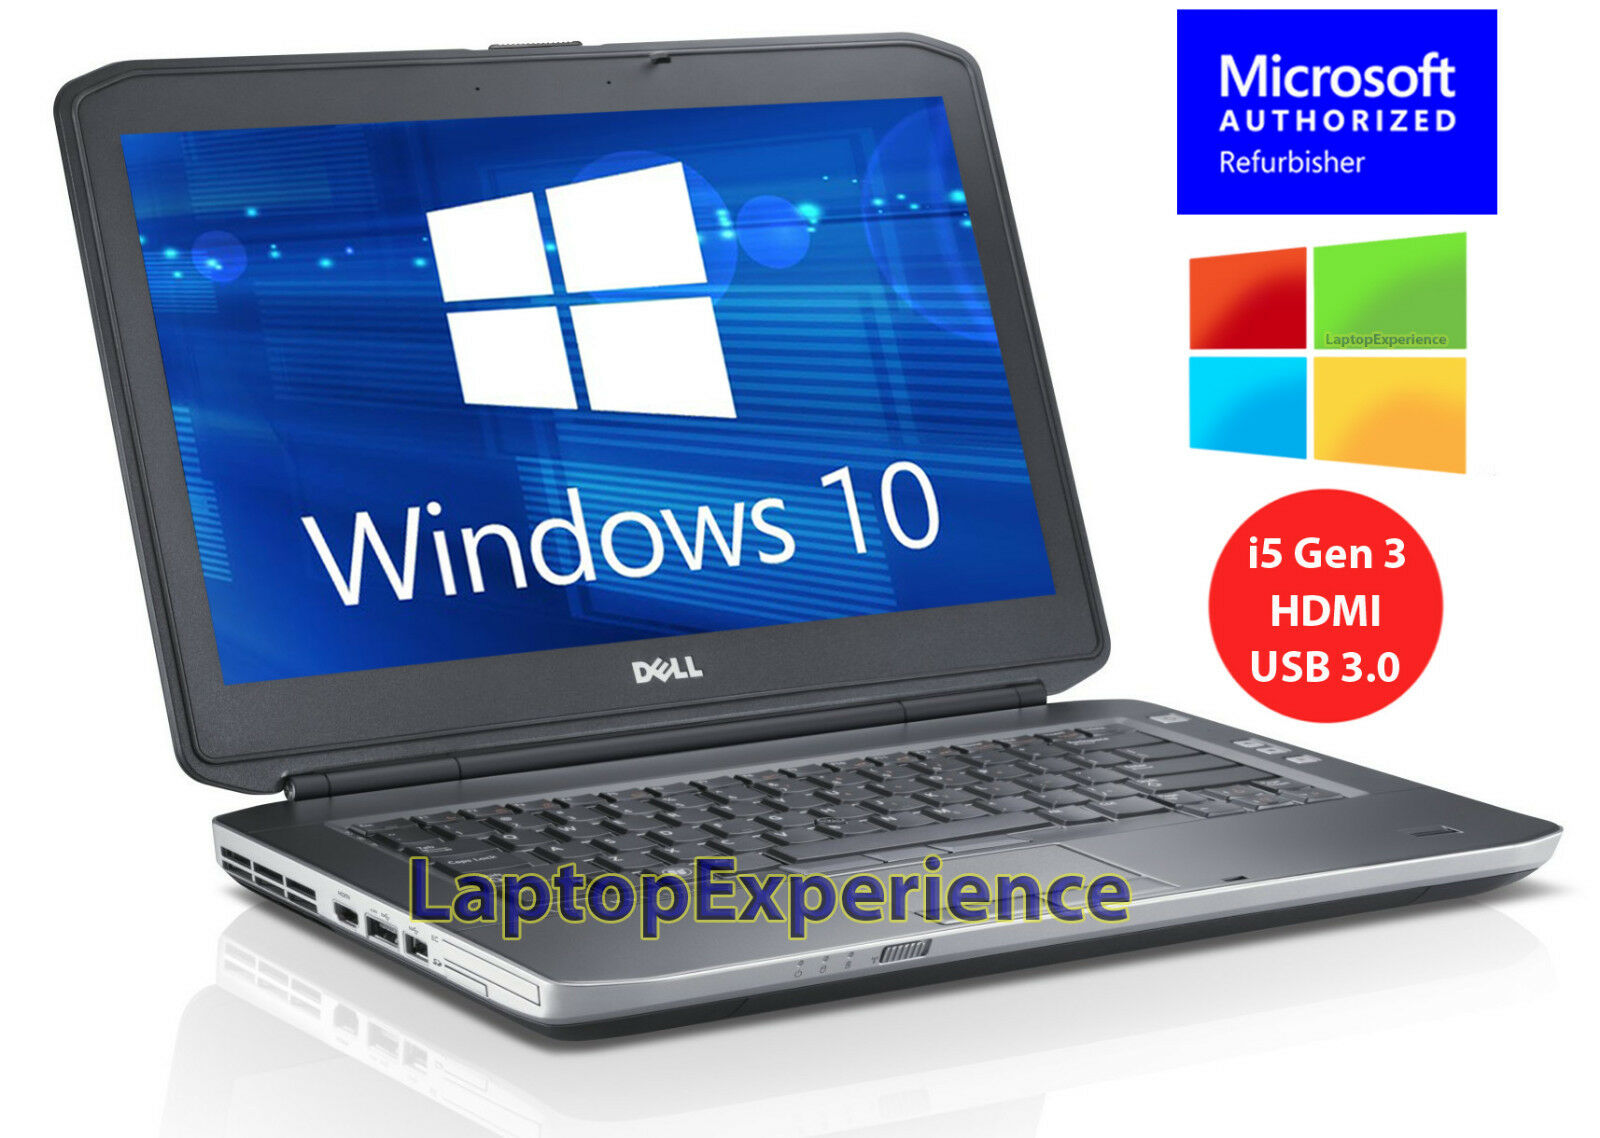 Laptop Windows - DELL LATITUDE E5430 LAPTOP WINDOWS 10 WIN DVD i5 2.5GHz 320GB HDMI NOTEBOOK PC